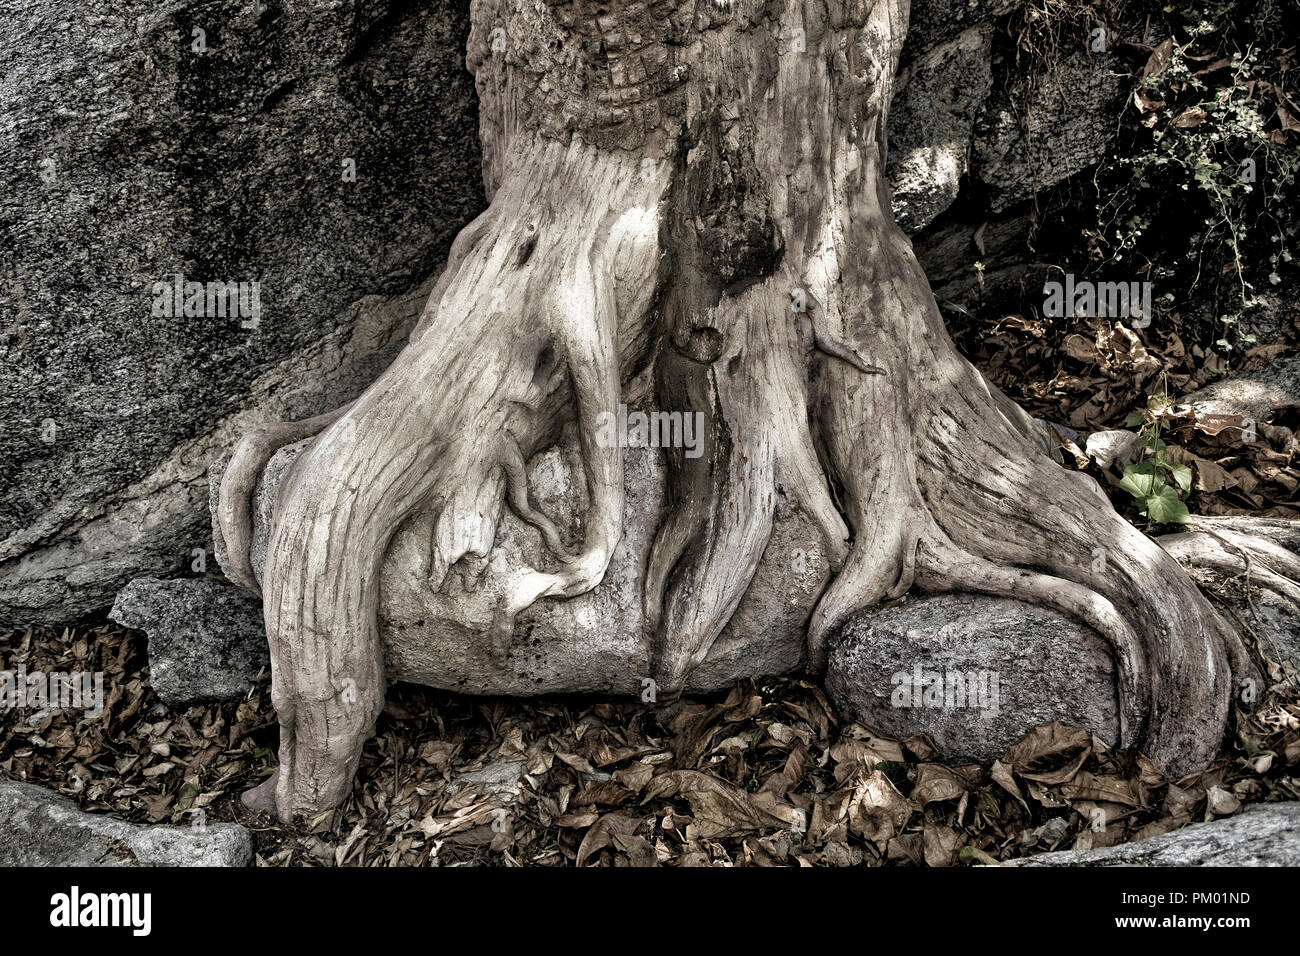 Exposed tree roots. Petrified wood structure turning to stone as a natural phenomenon. - Stock Image